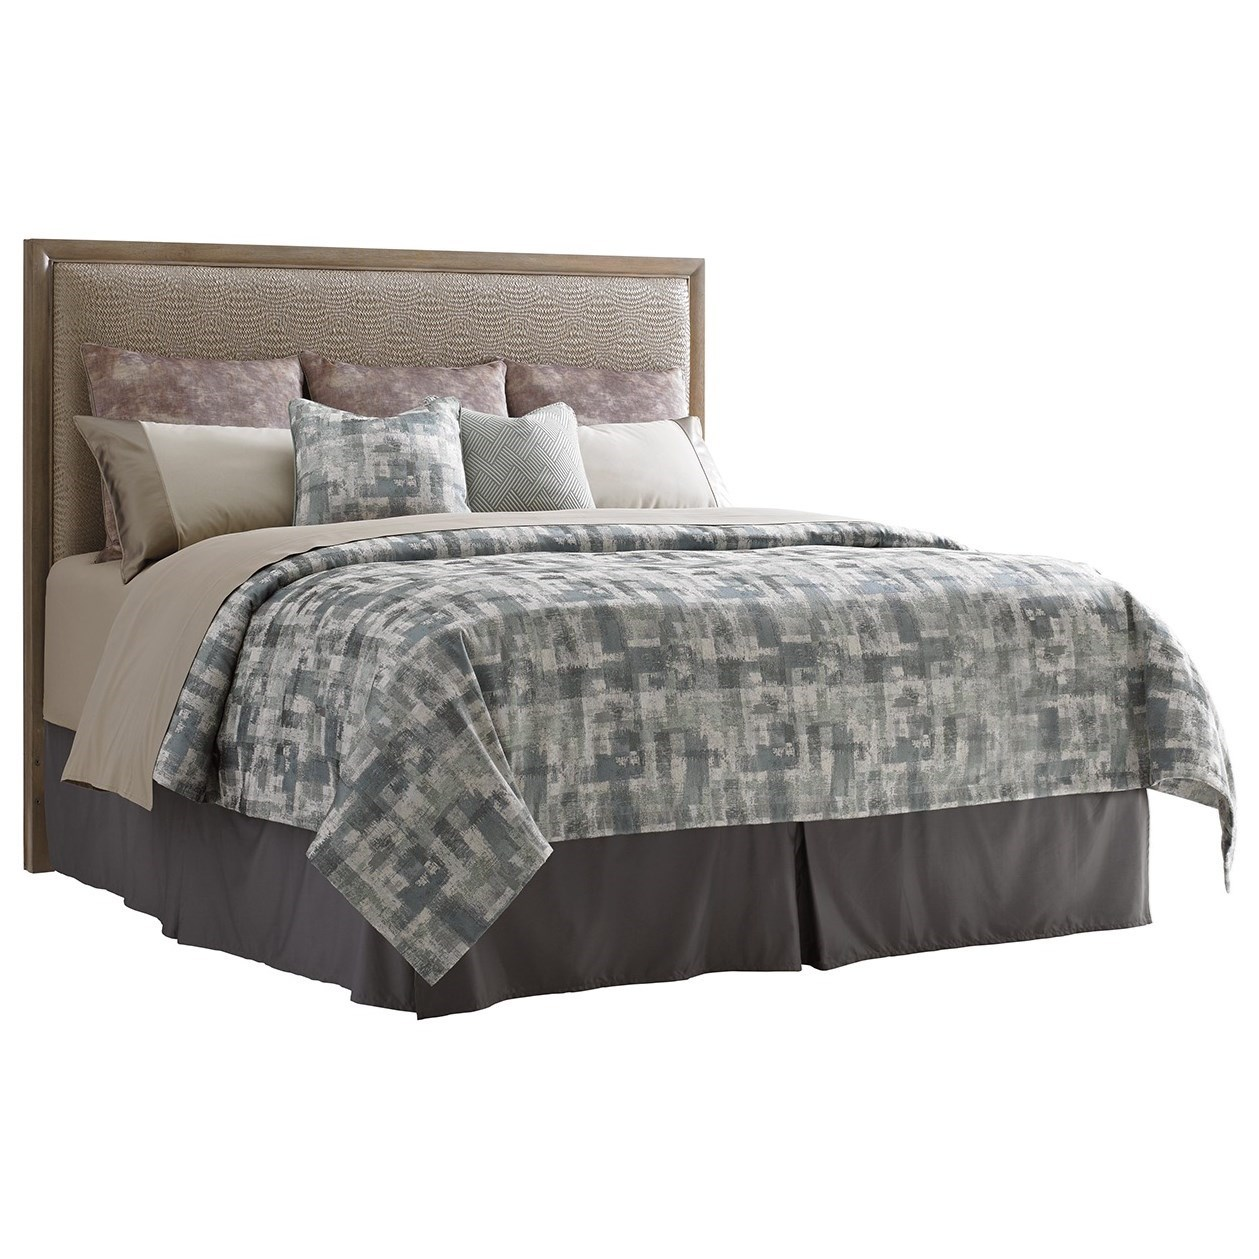 Shadow Play Uptown Panel Headboard 5/0 Queen by Lexington at Jacksonville Furniture Mart